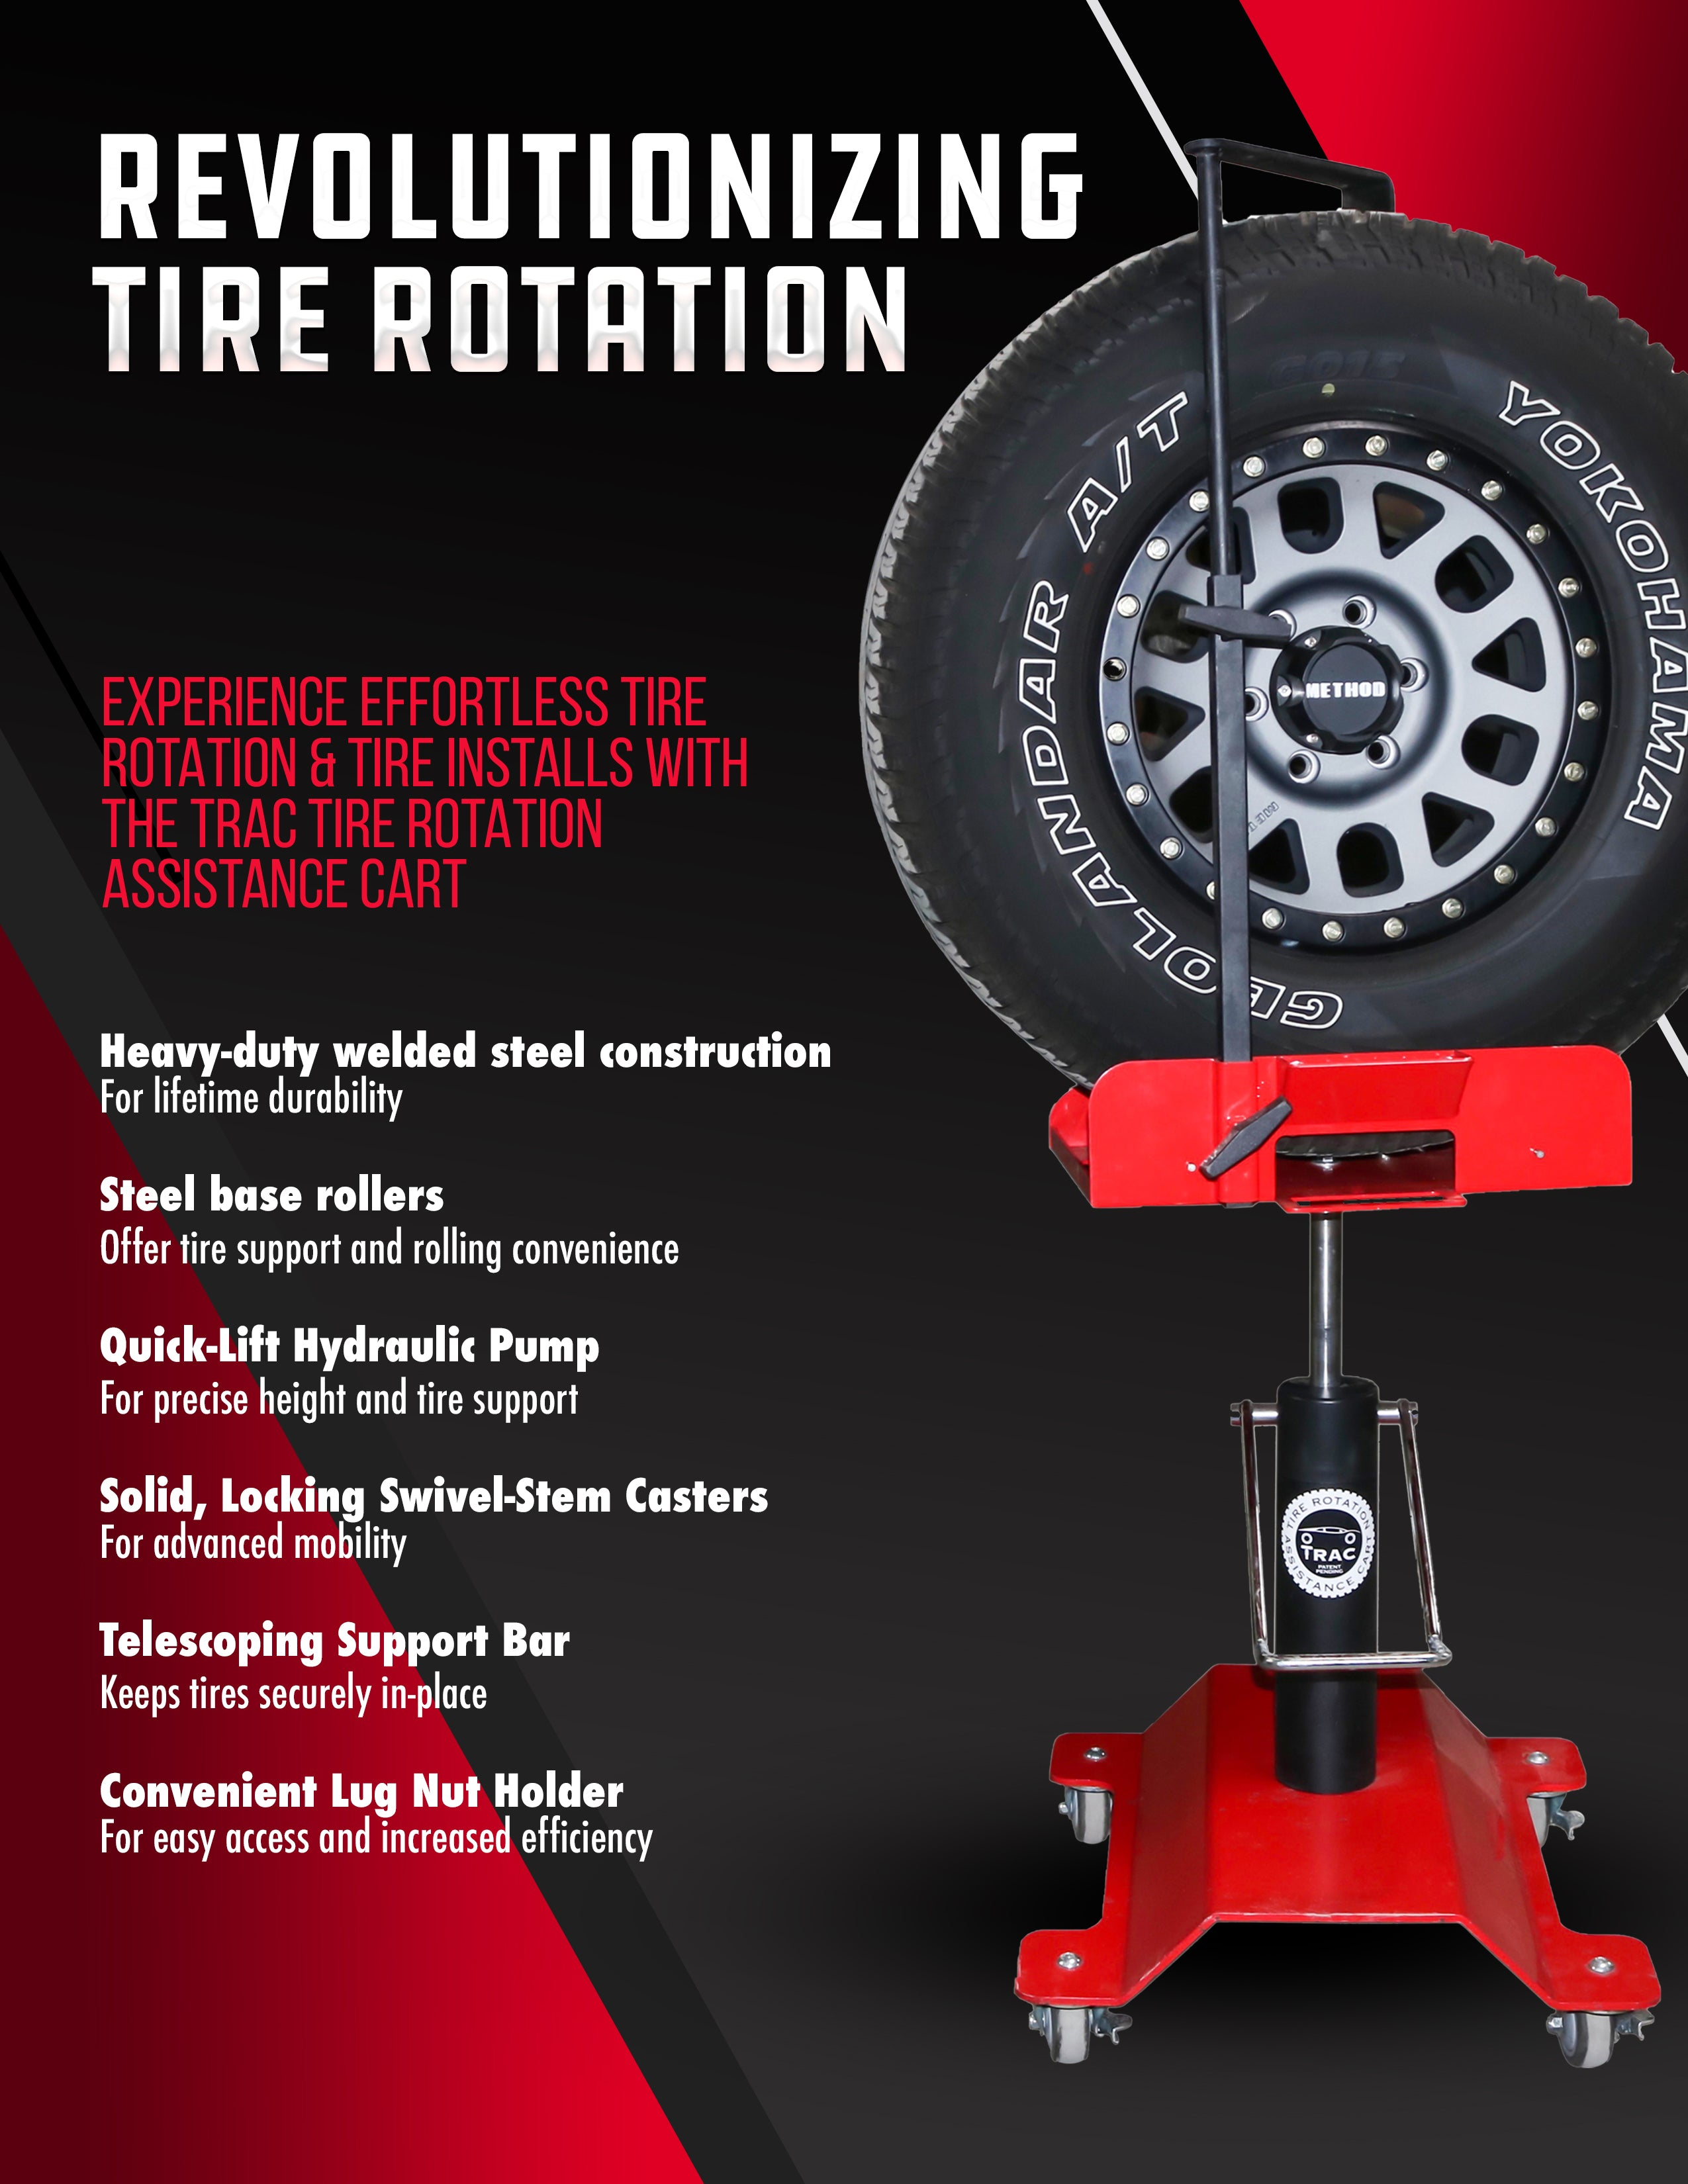 TRAC Tire Rotation Assistance Cart - Fast, Efficient, Safe Tire Rotations and Installs